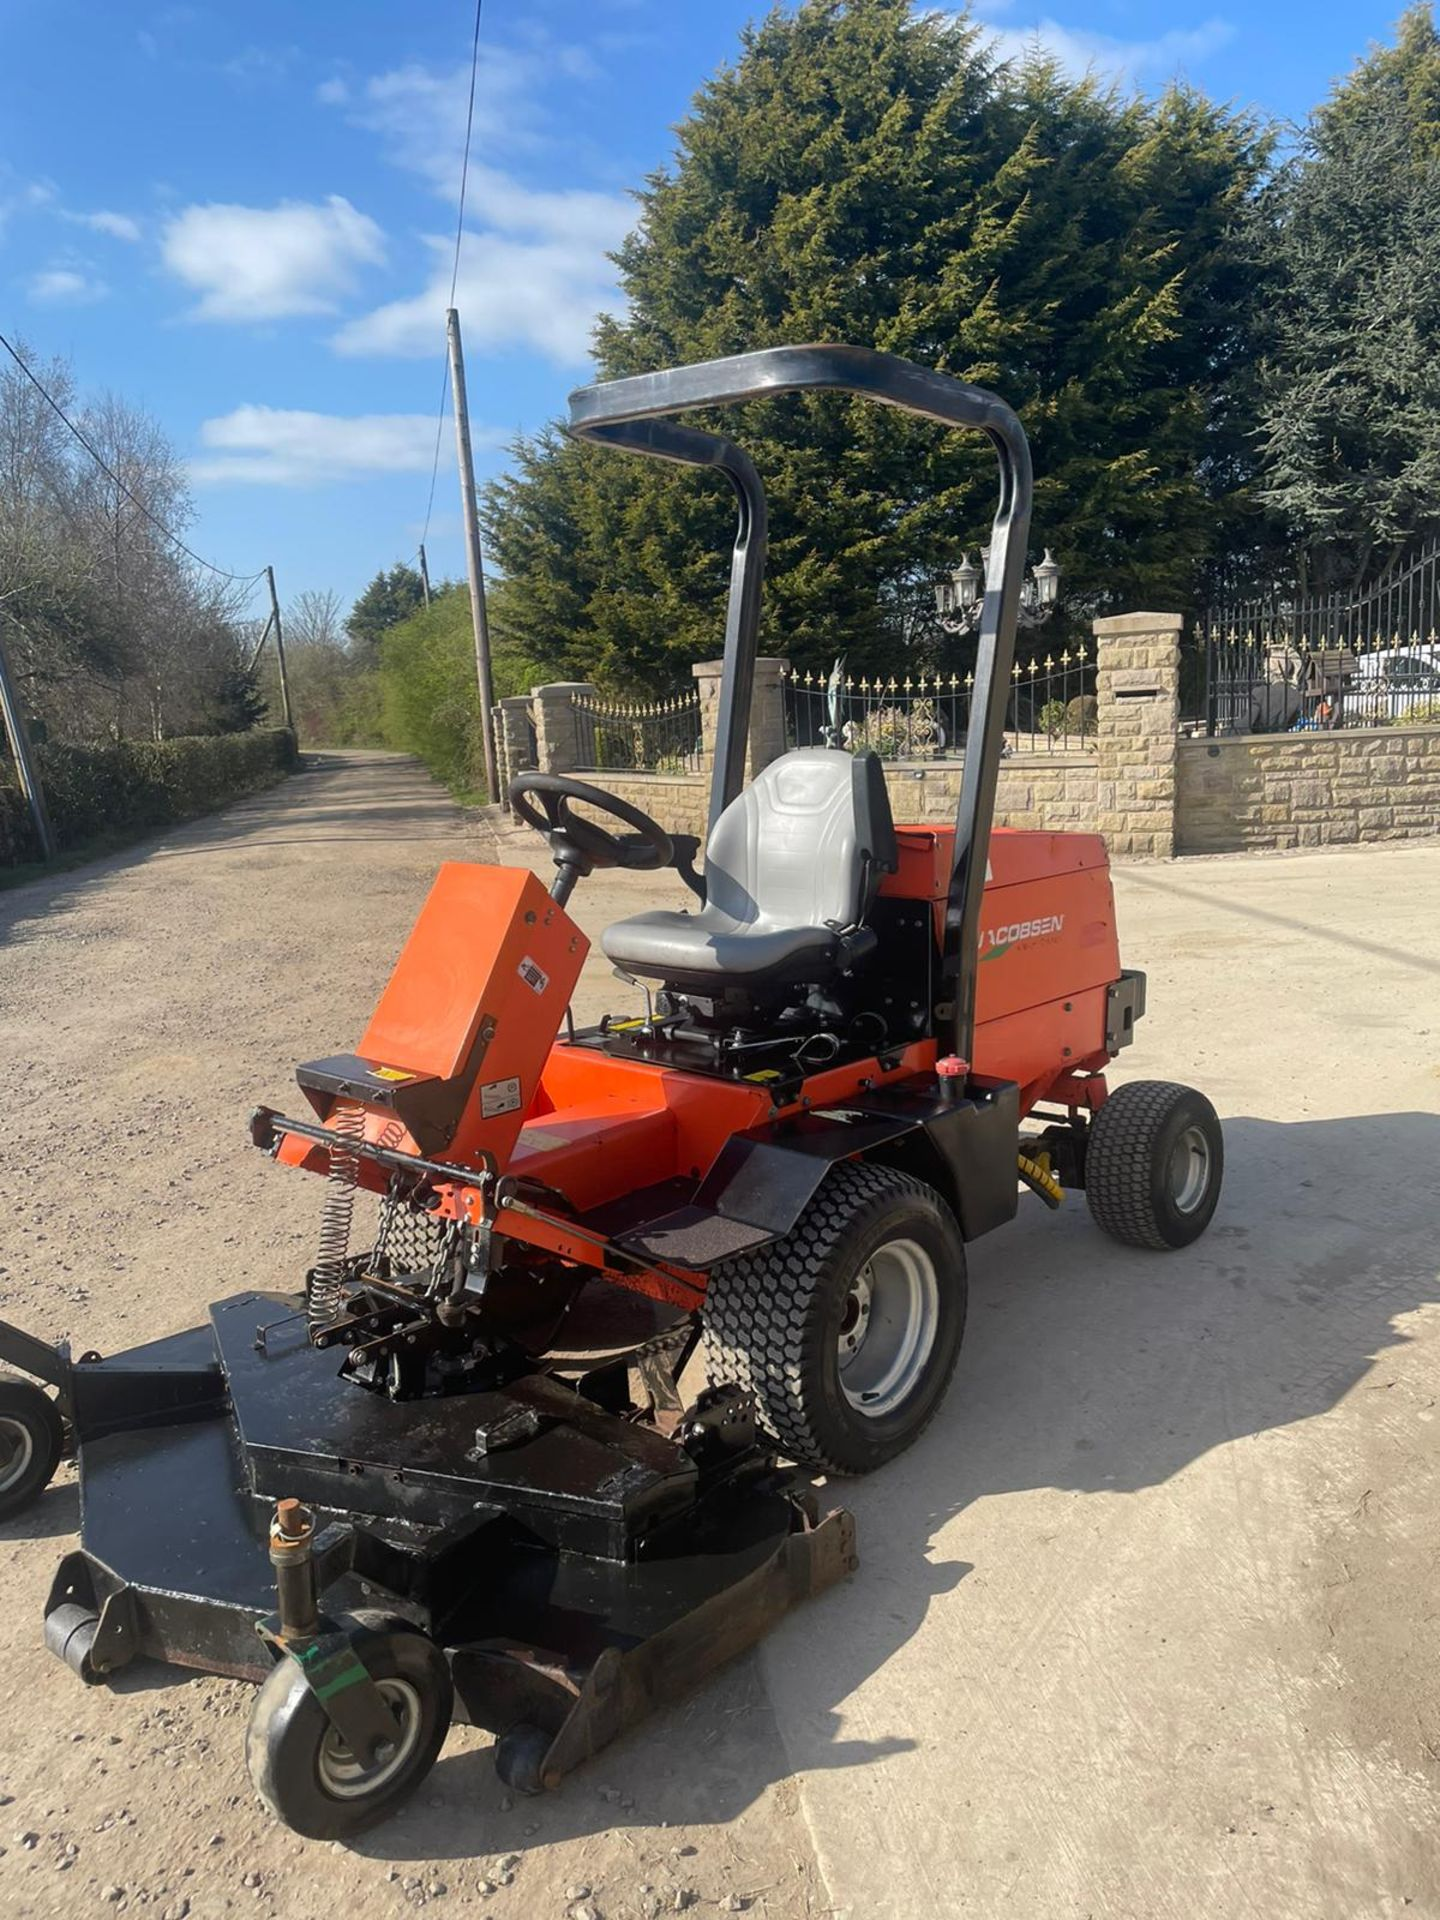 2013 JACOBSON 628D RIDE ON LAWN MOWER OUT FRONT, VERY GOOD CONDITION, 4 WHEEL DRIVE *NO VAT* - Image 4 of 7